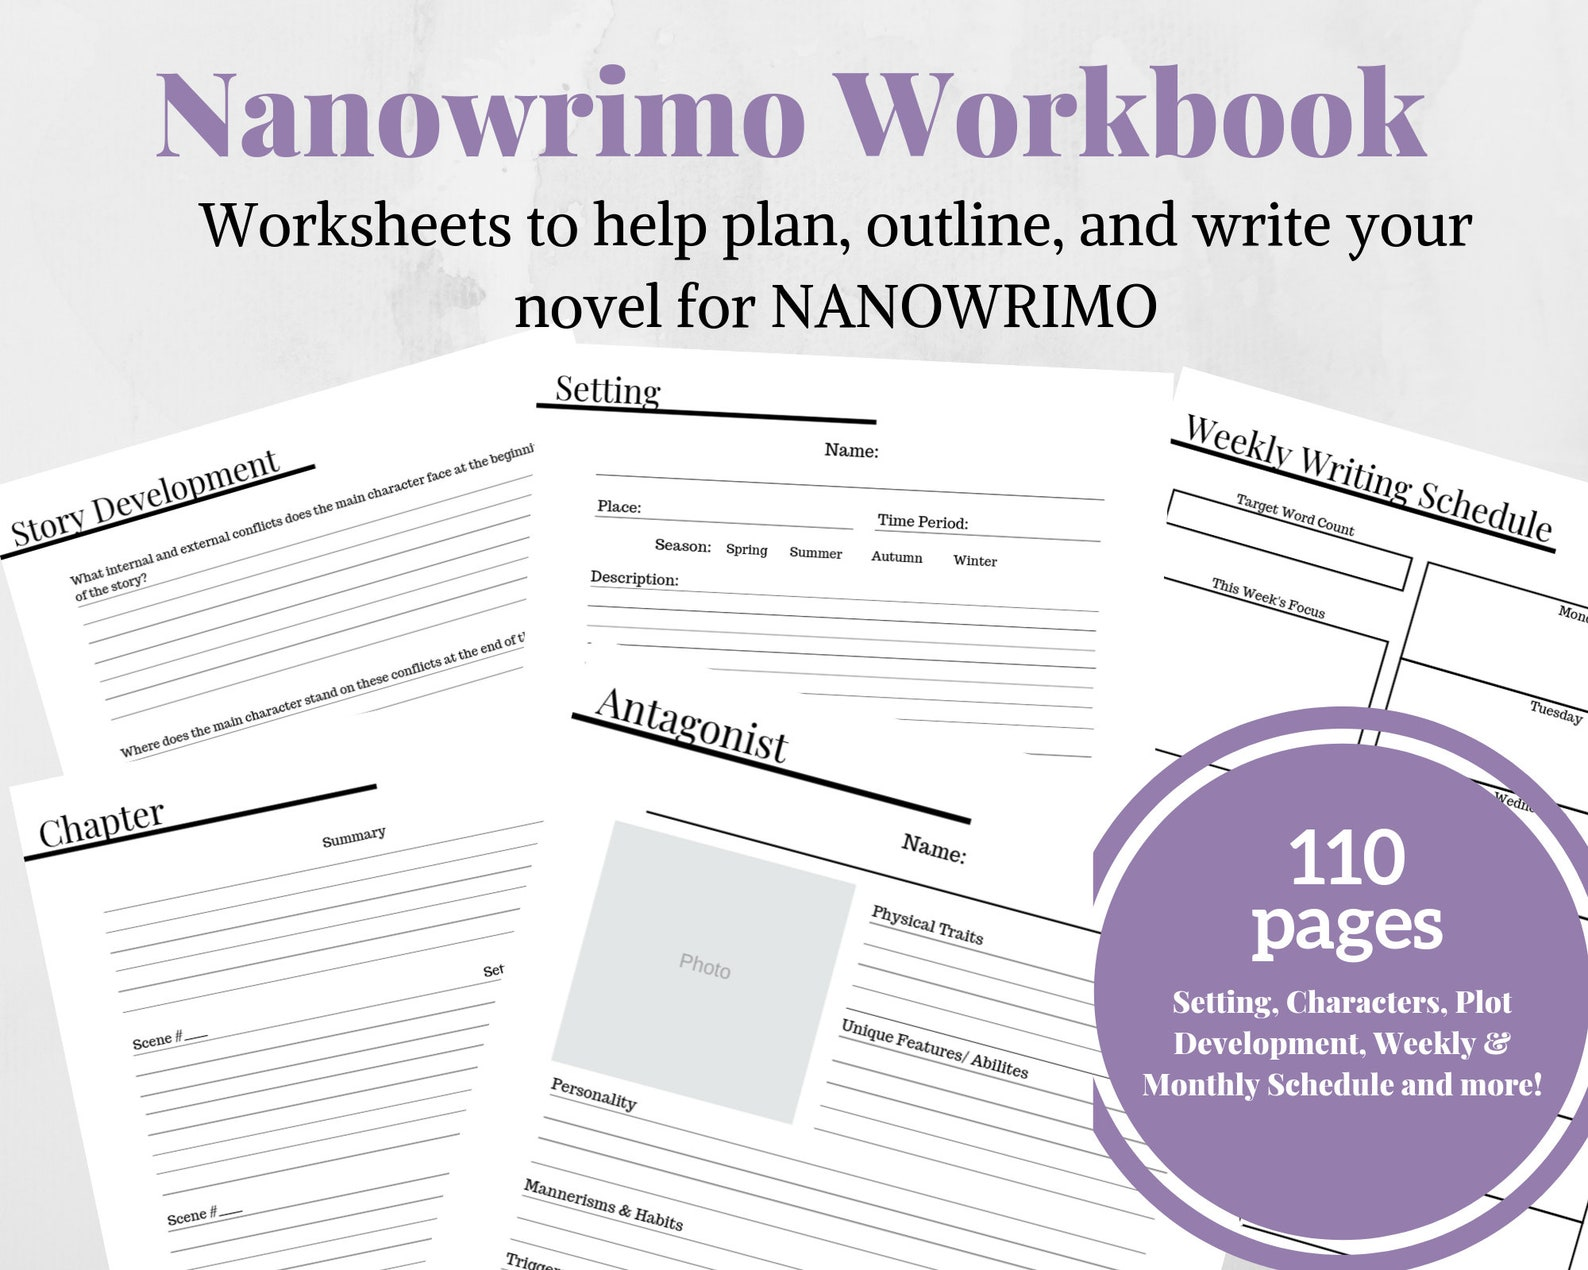 Nanowrimo 30 Day Novel Workbook